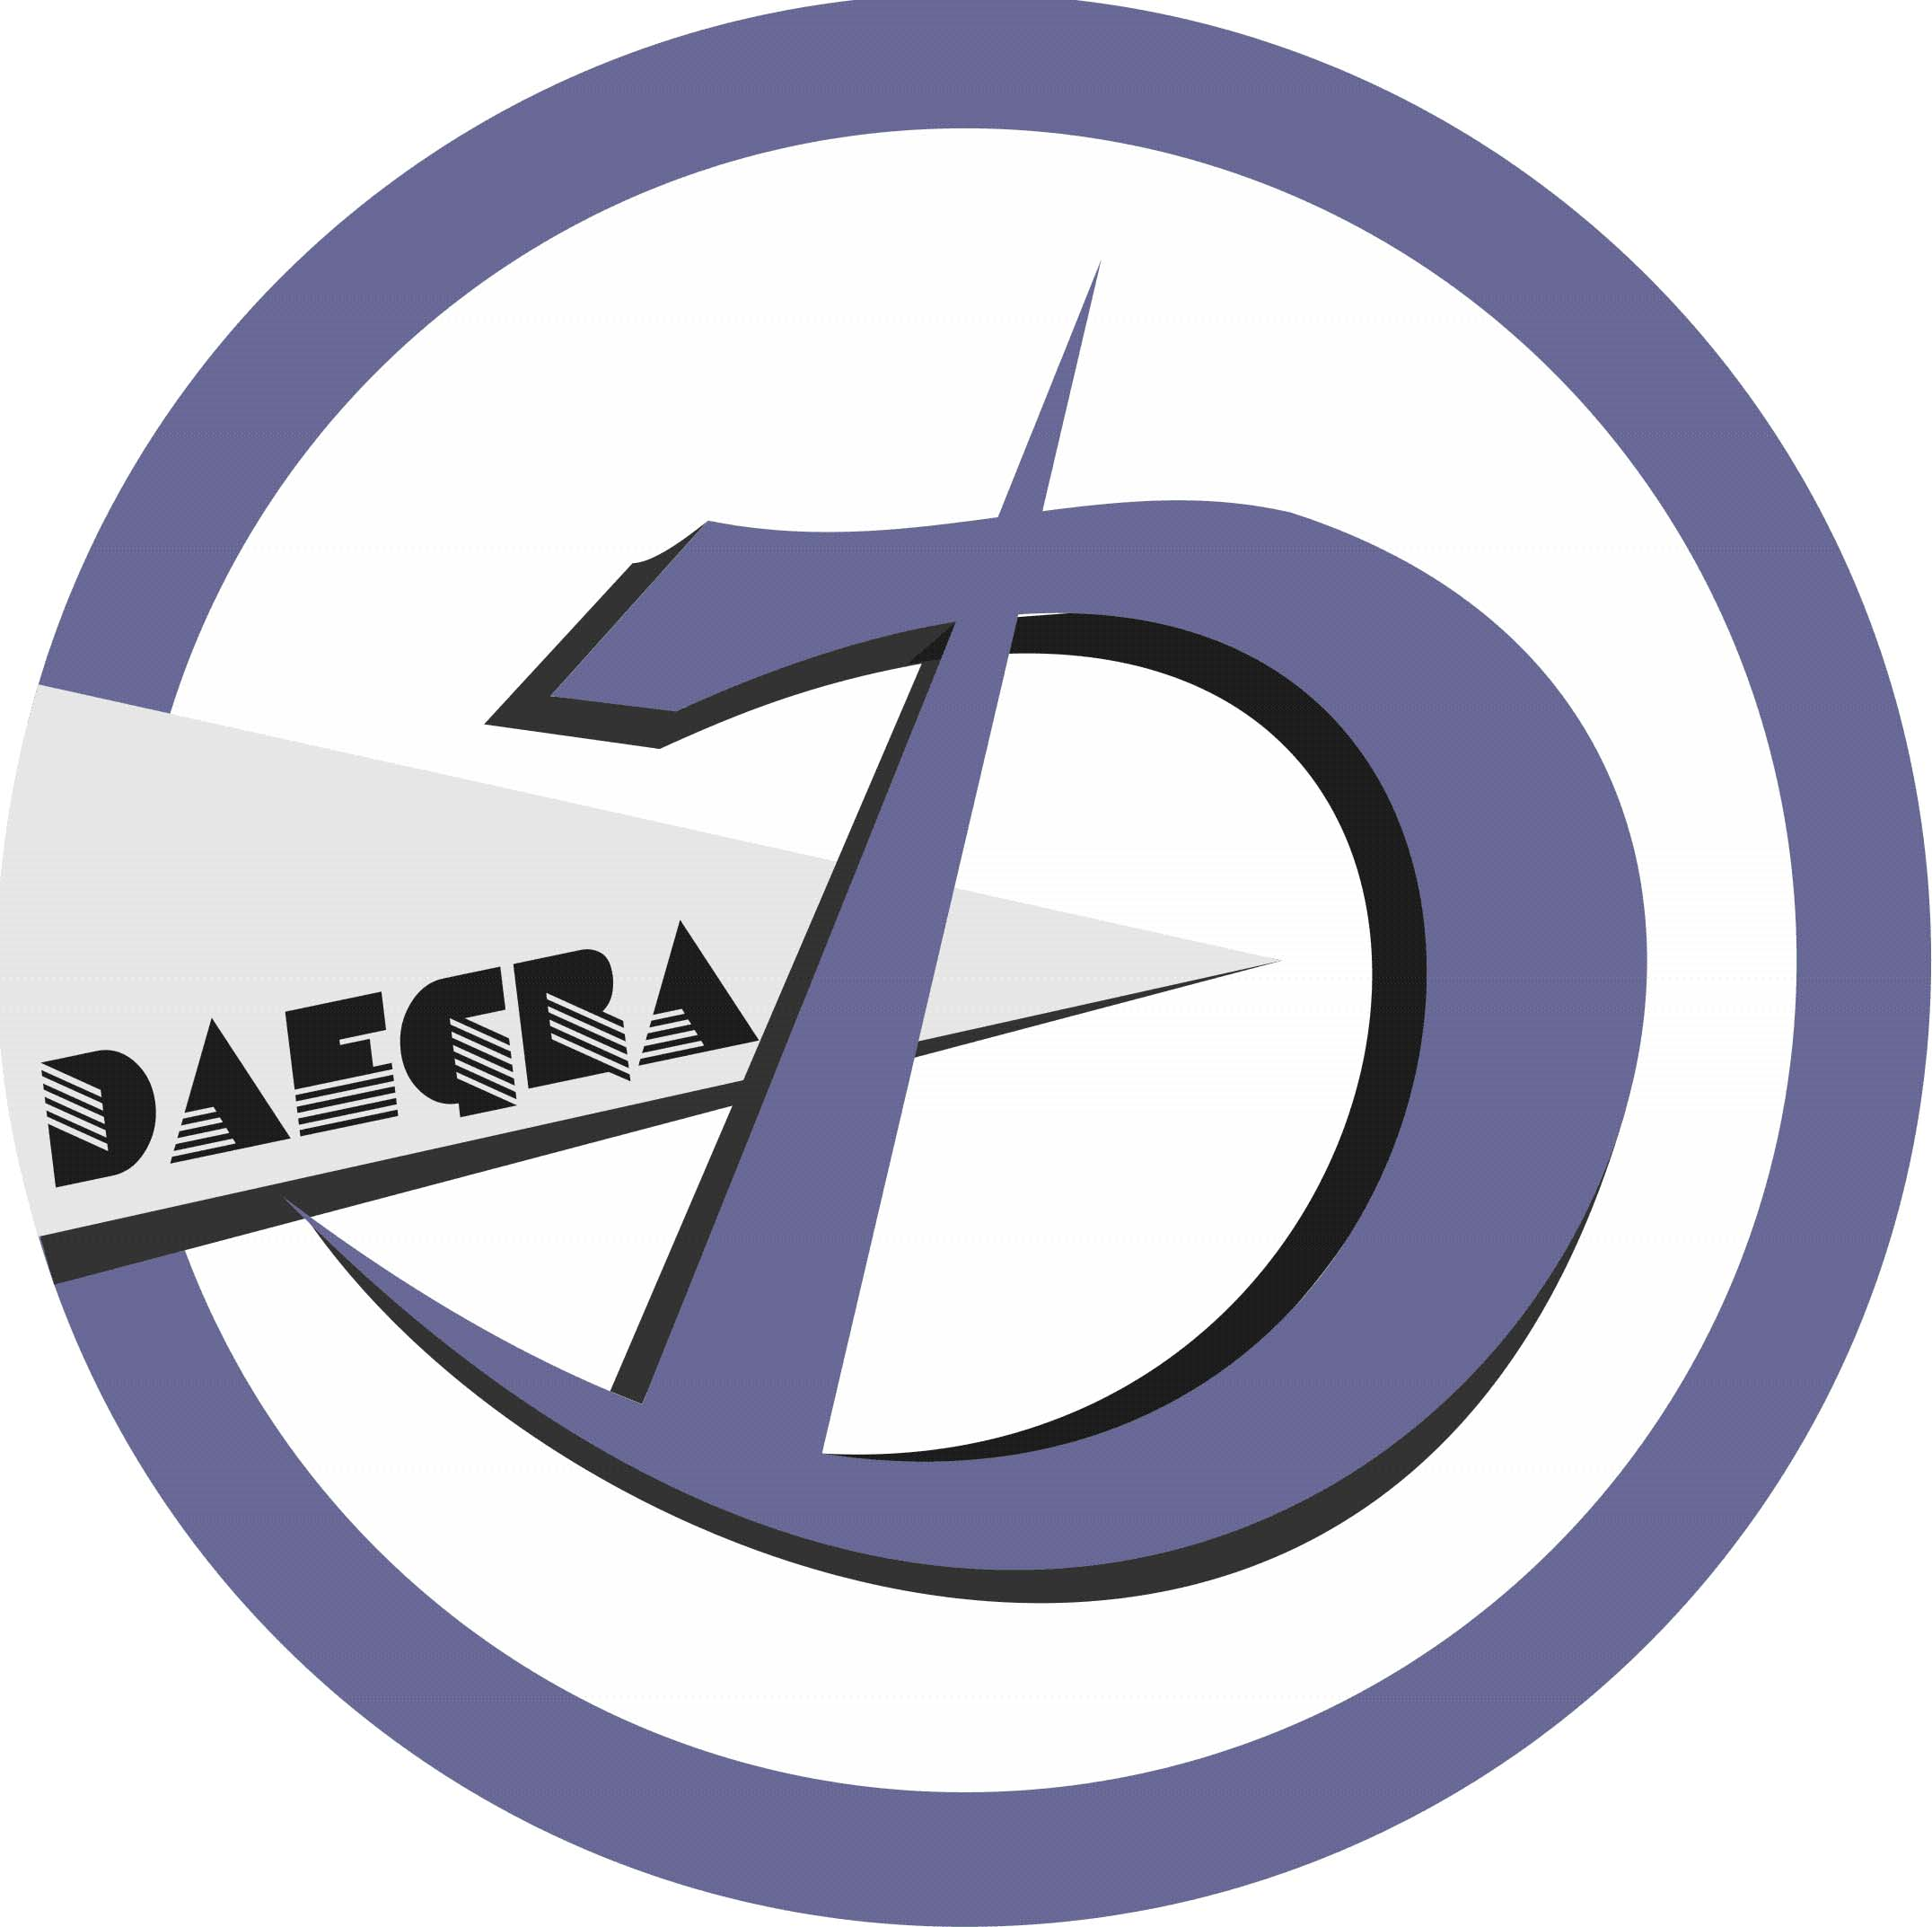 Daegra Placement Job Openings